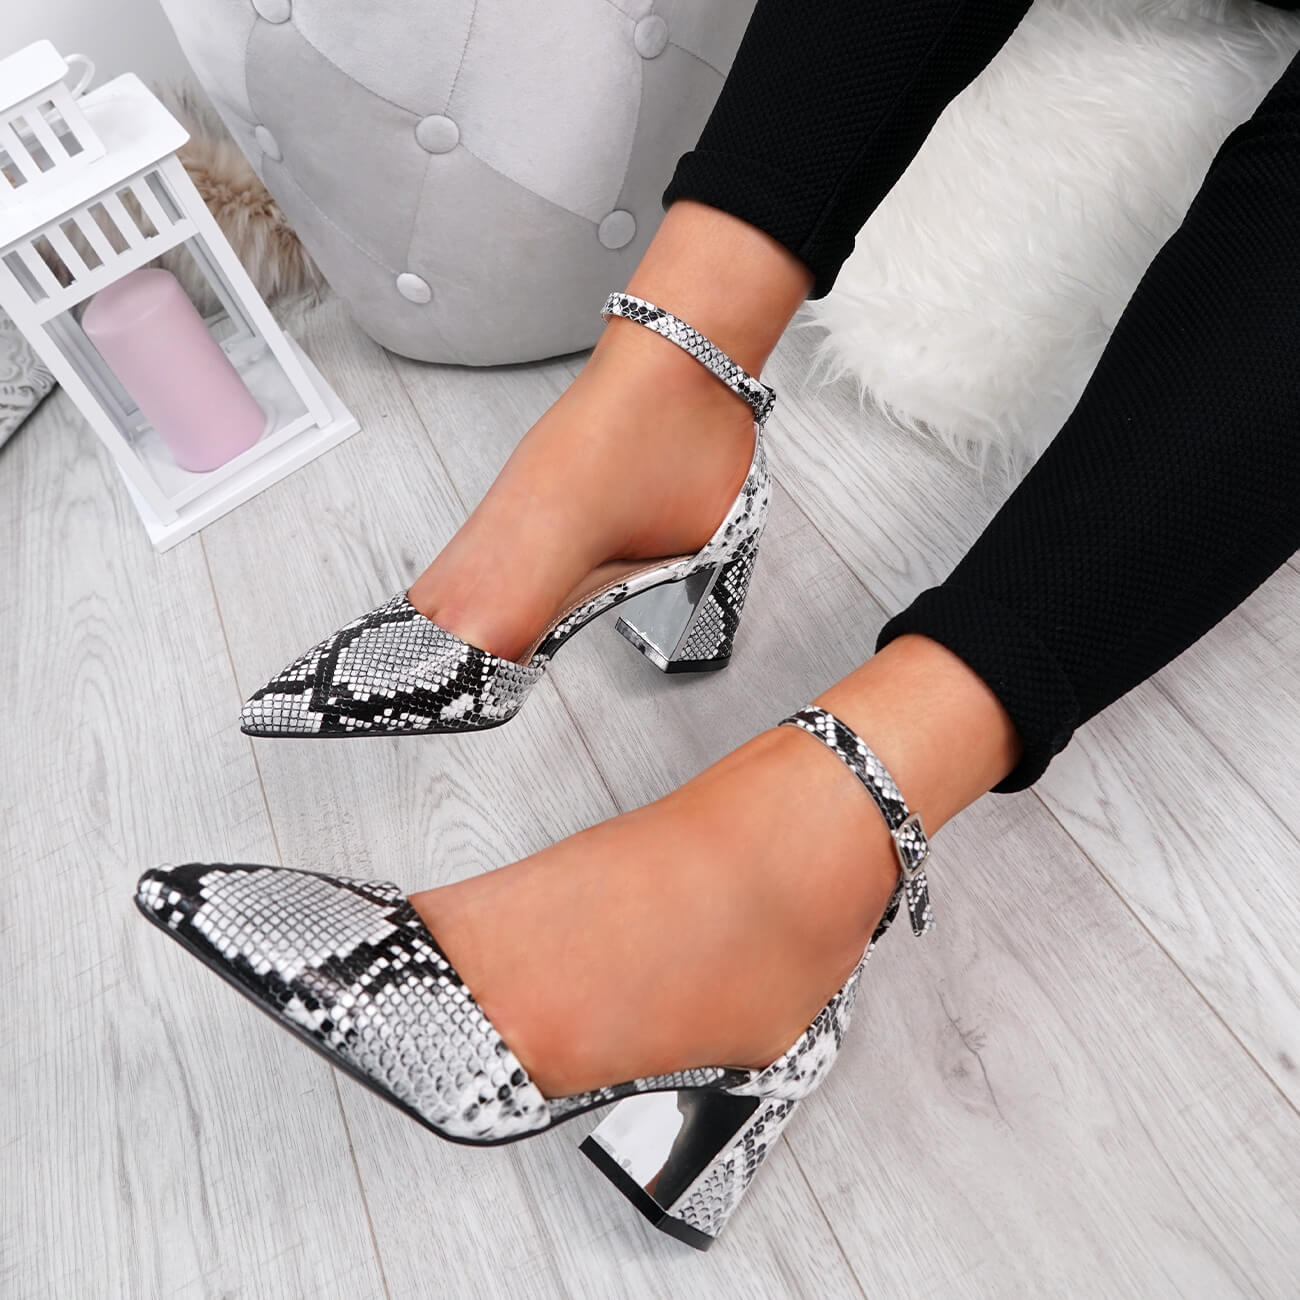 WOMENS-LADIES-ANKLE-STRAP-POINTED-HIGH-BLOCK-HEEL-PUMPS-COURT-SHOES-SIZE thumbnail 22